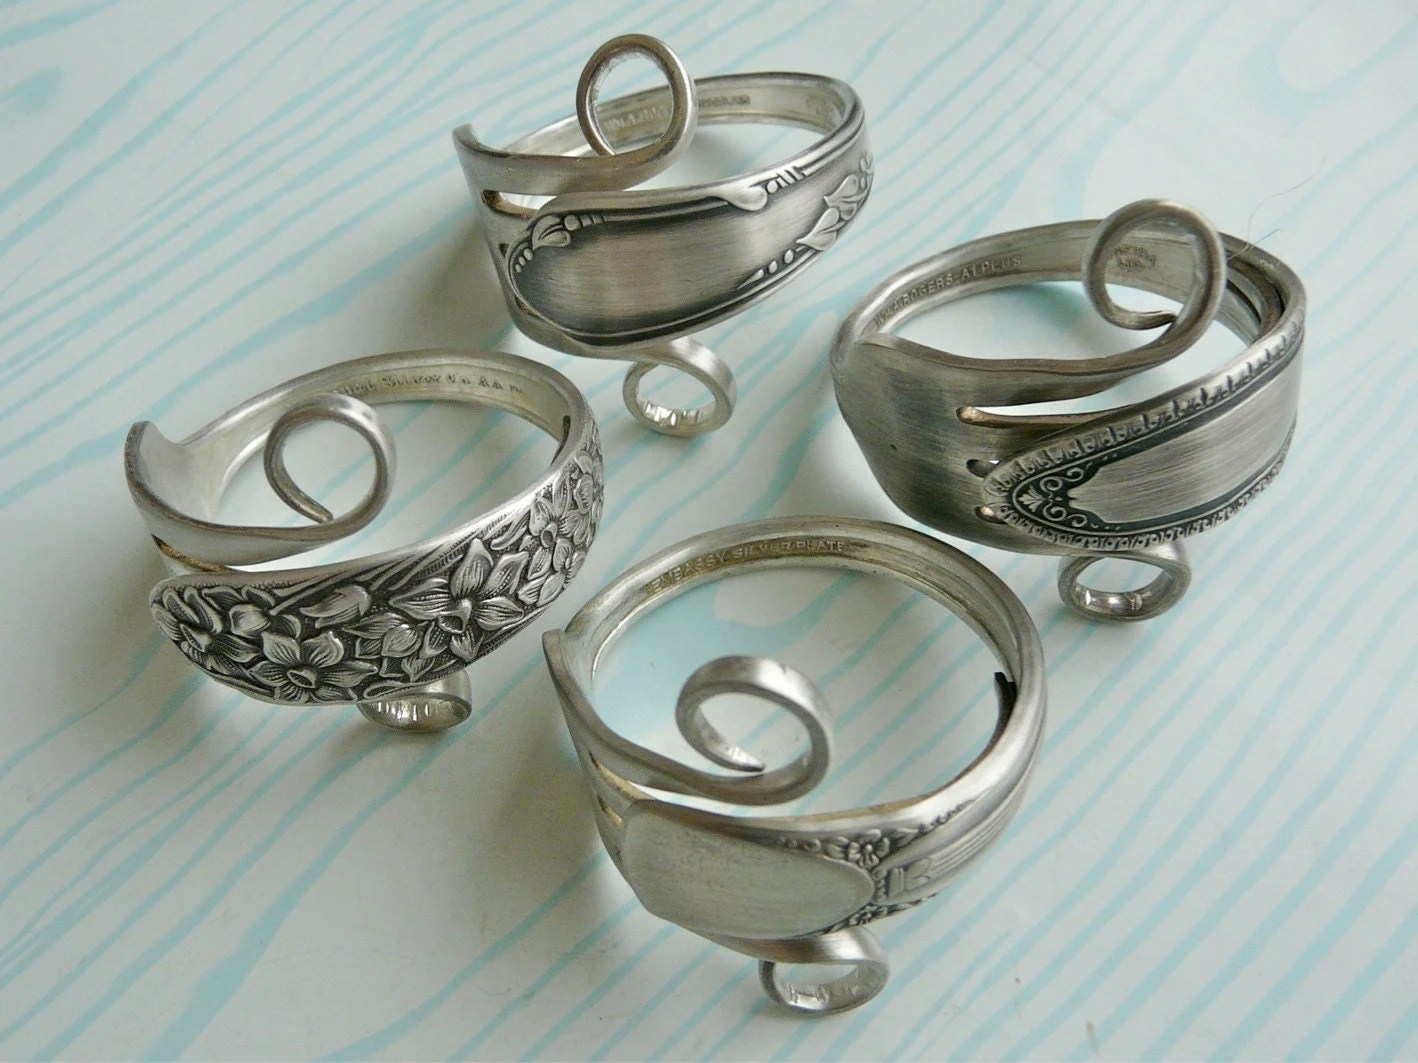 Besteck Schmuck Selber Machen Silverware Napkin Rings Antique Silver Forks Set Of 4 By